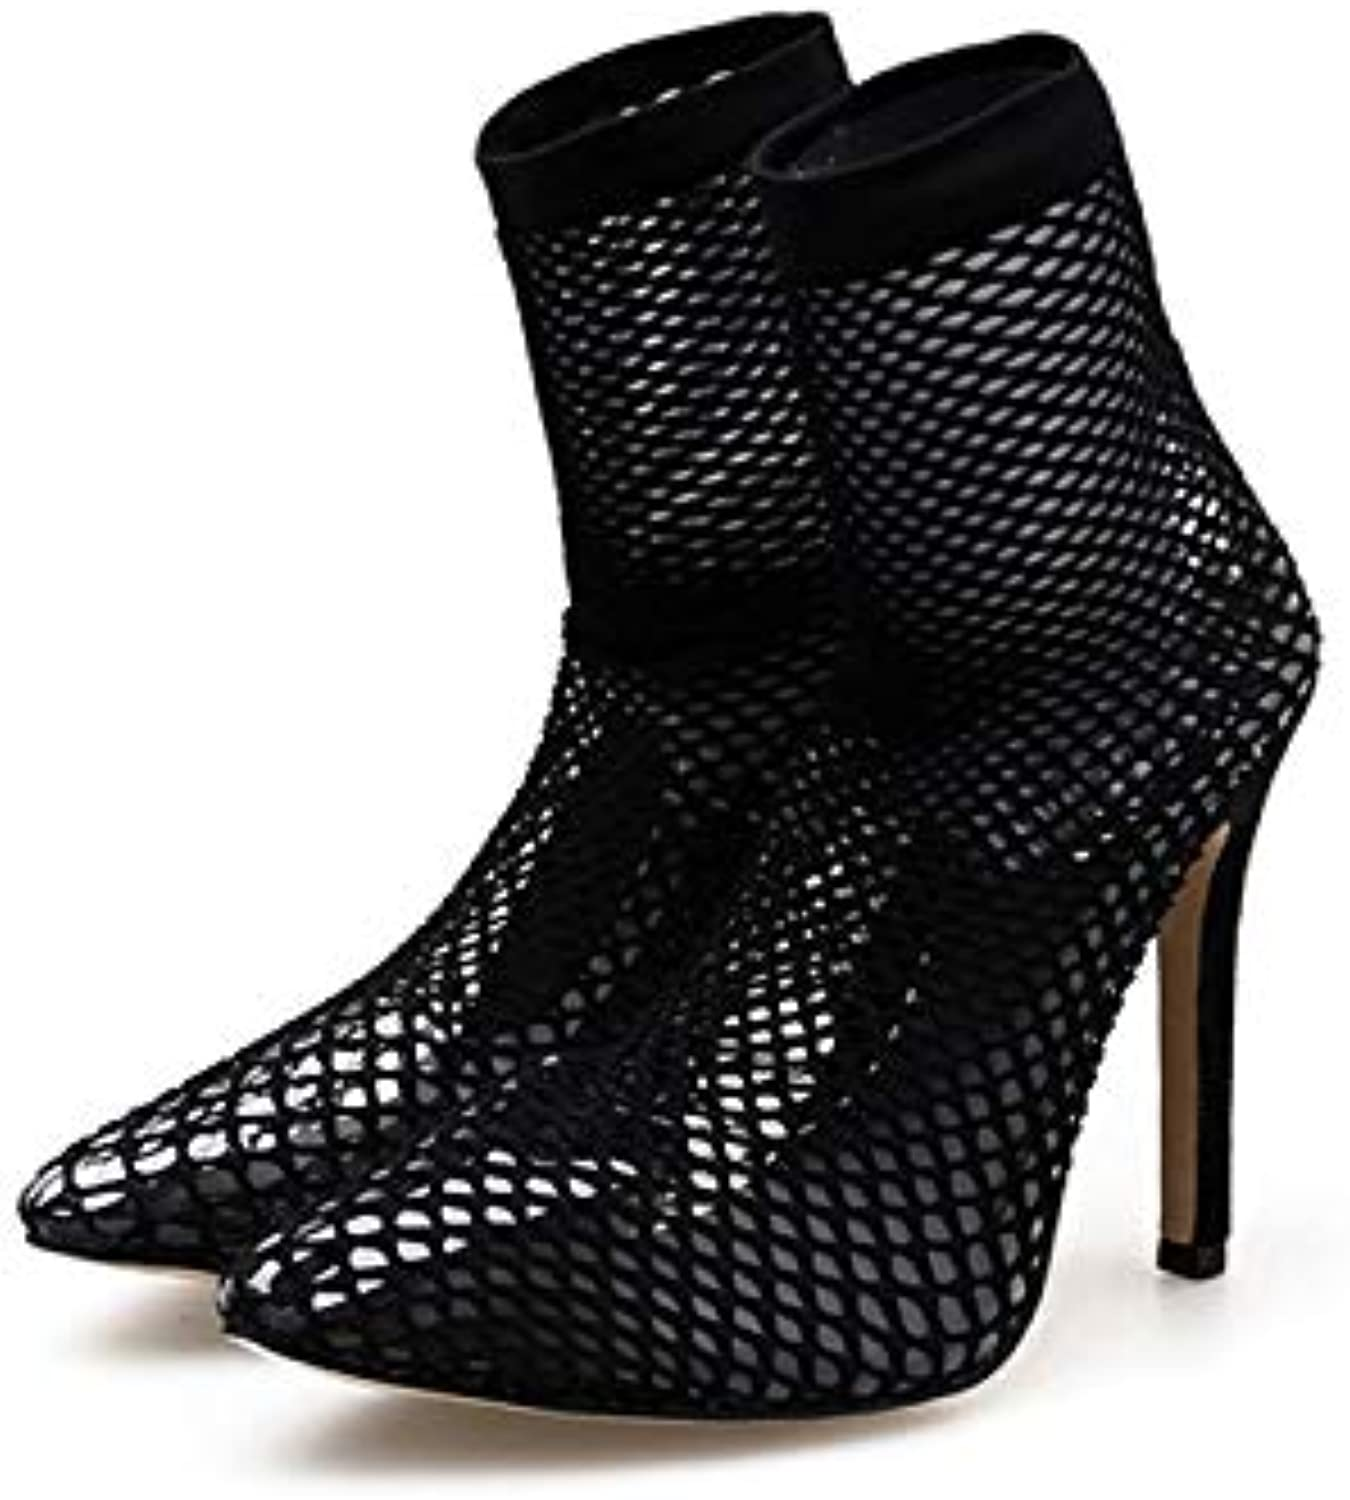 Fashion Women's Sandals, Ladies Prom Party Wedding Bridal Sandals shoes Leaking Toes Perfect Combination of Fishnet Socks and High Heels,40